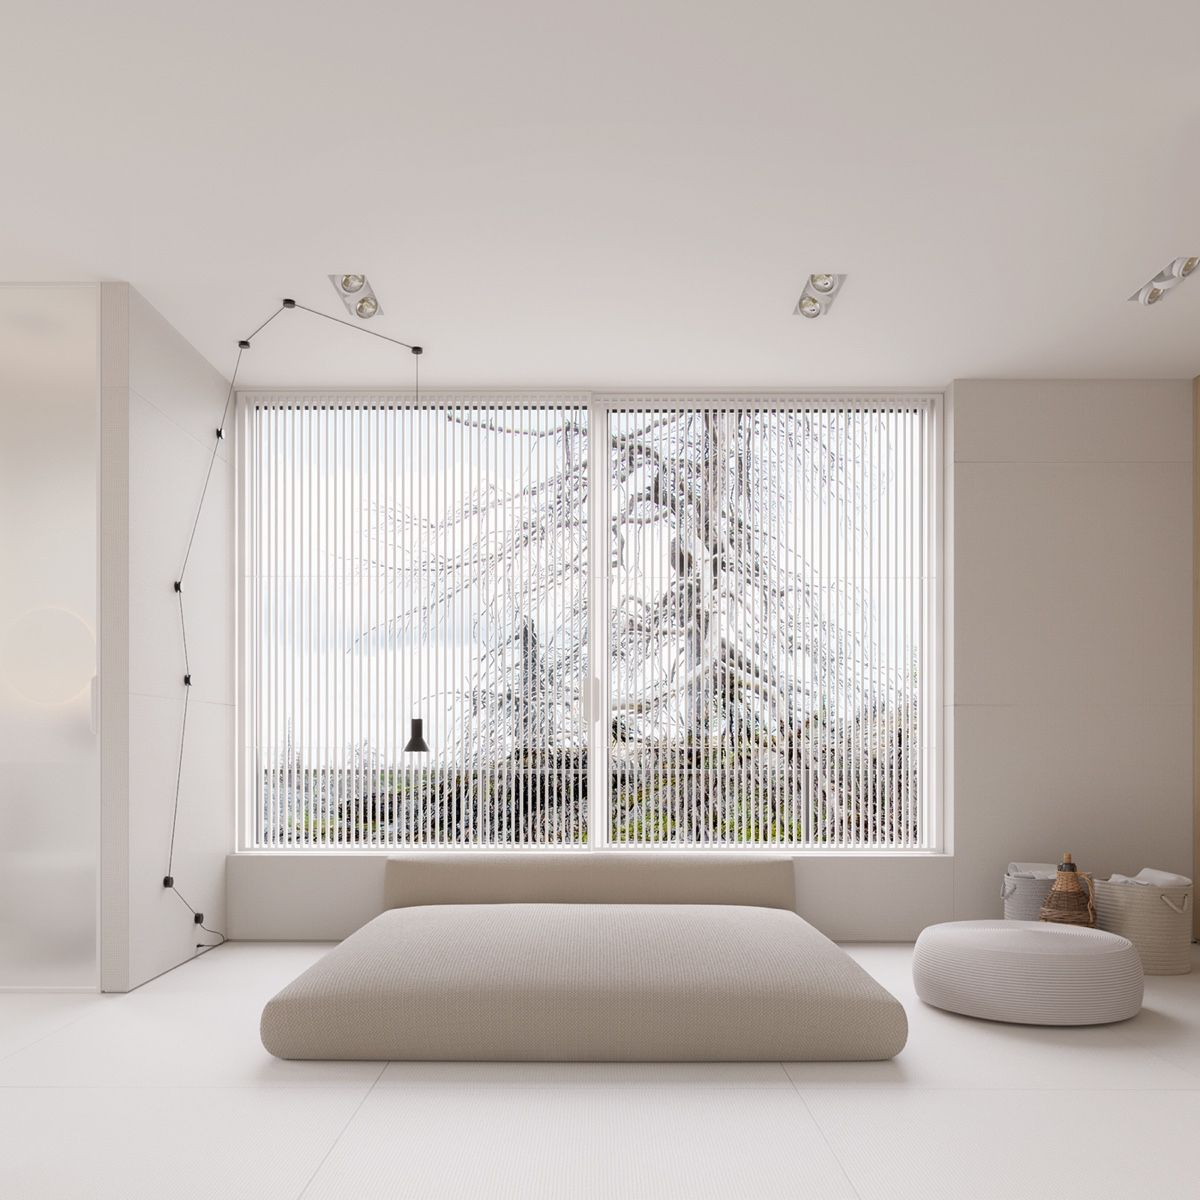 big-windows-simple-double-bed-white-carpet